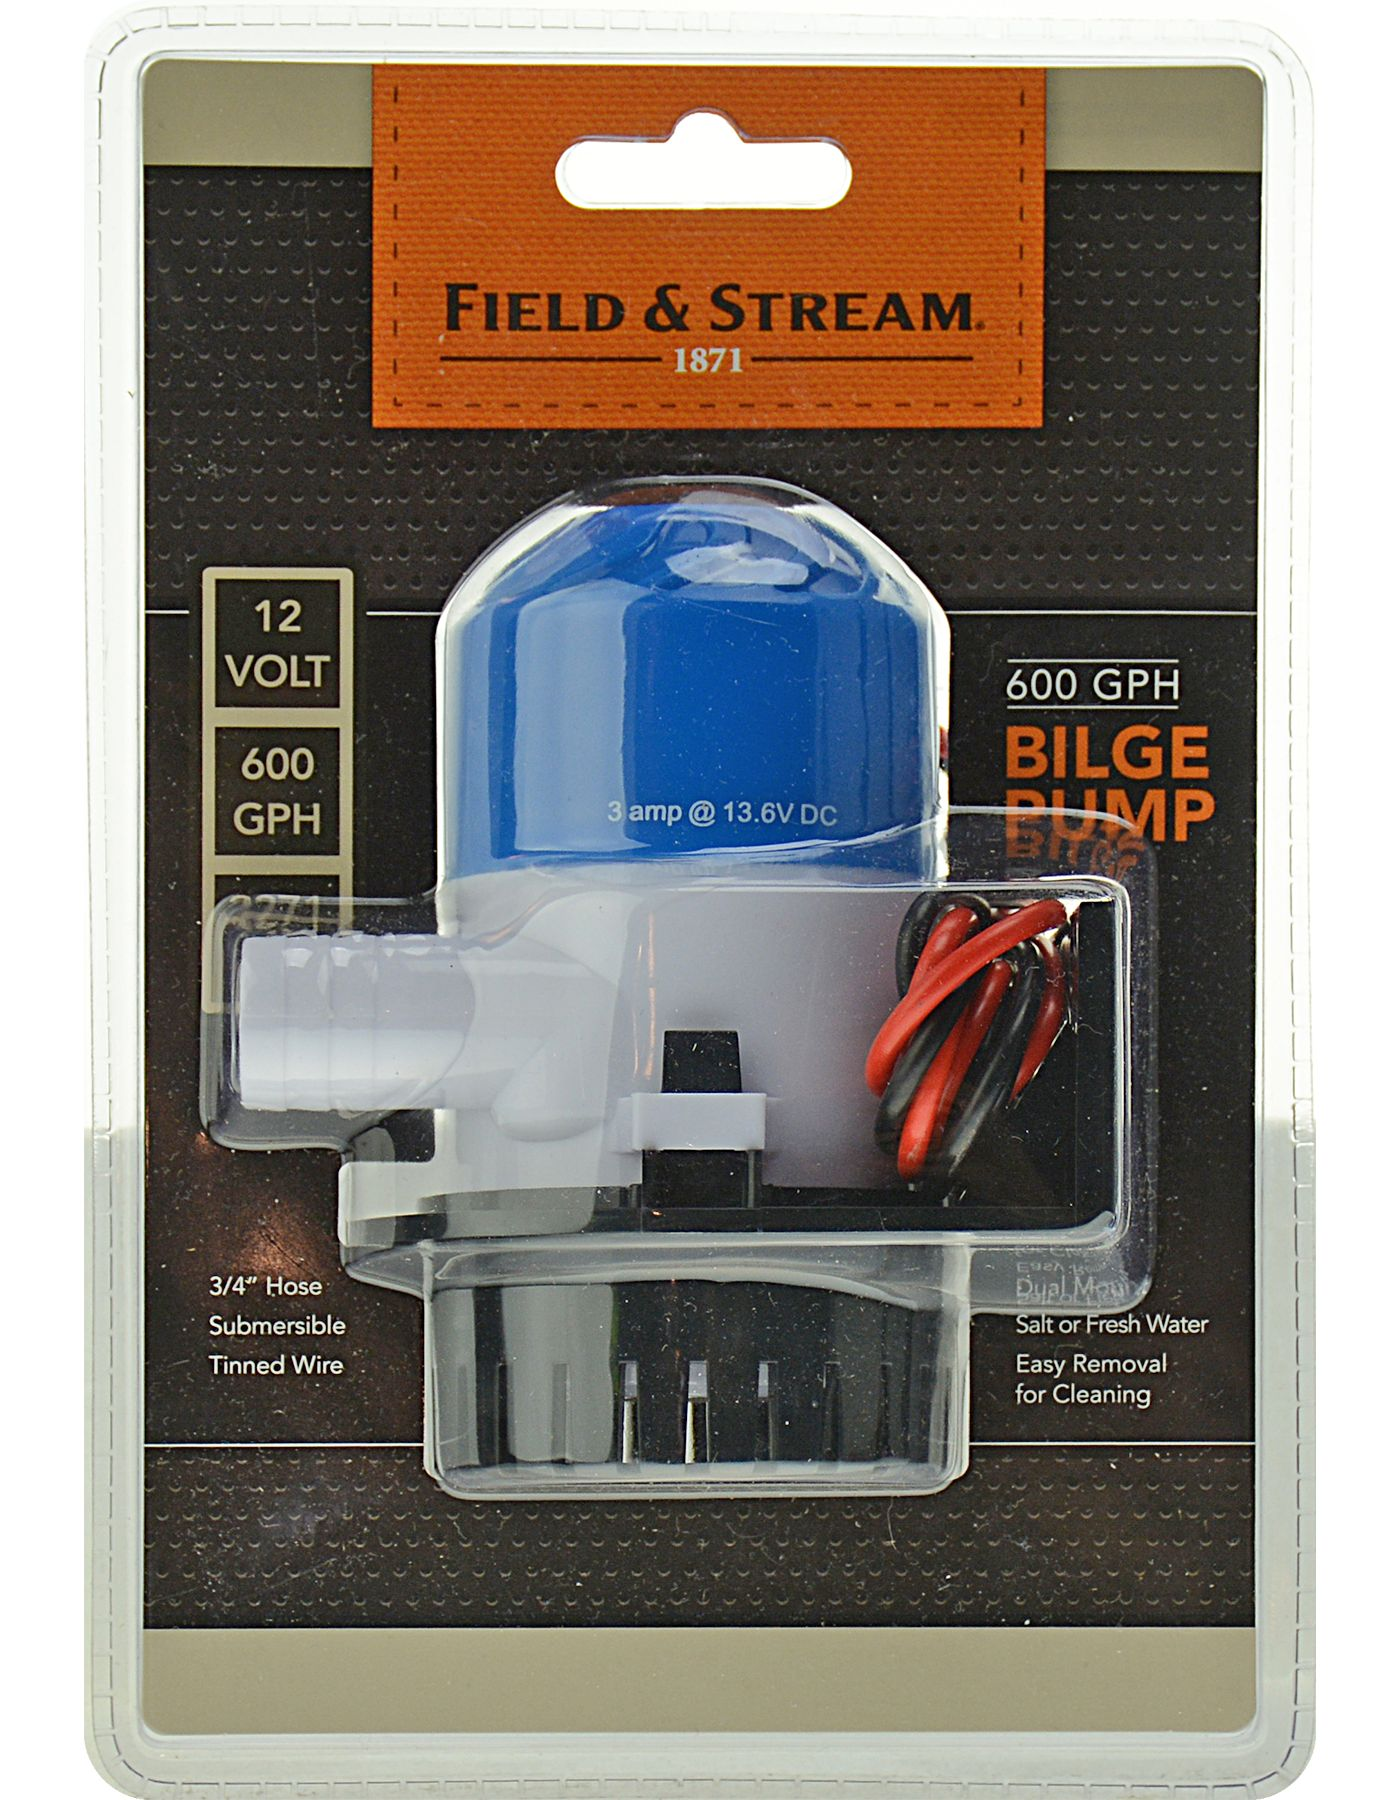 Field & Stream 600 GPH Bilge Pump